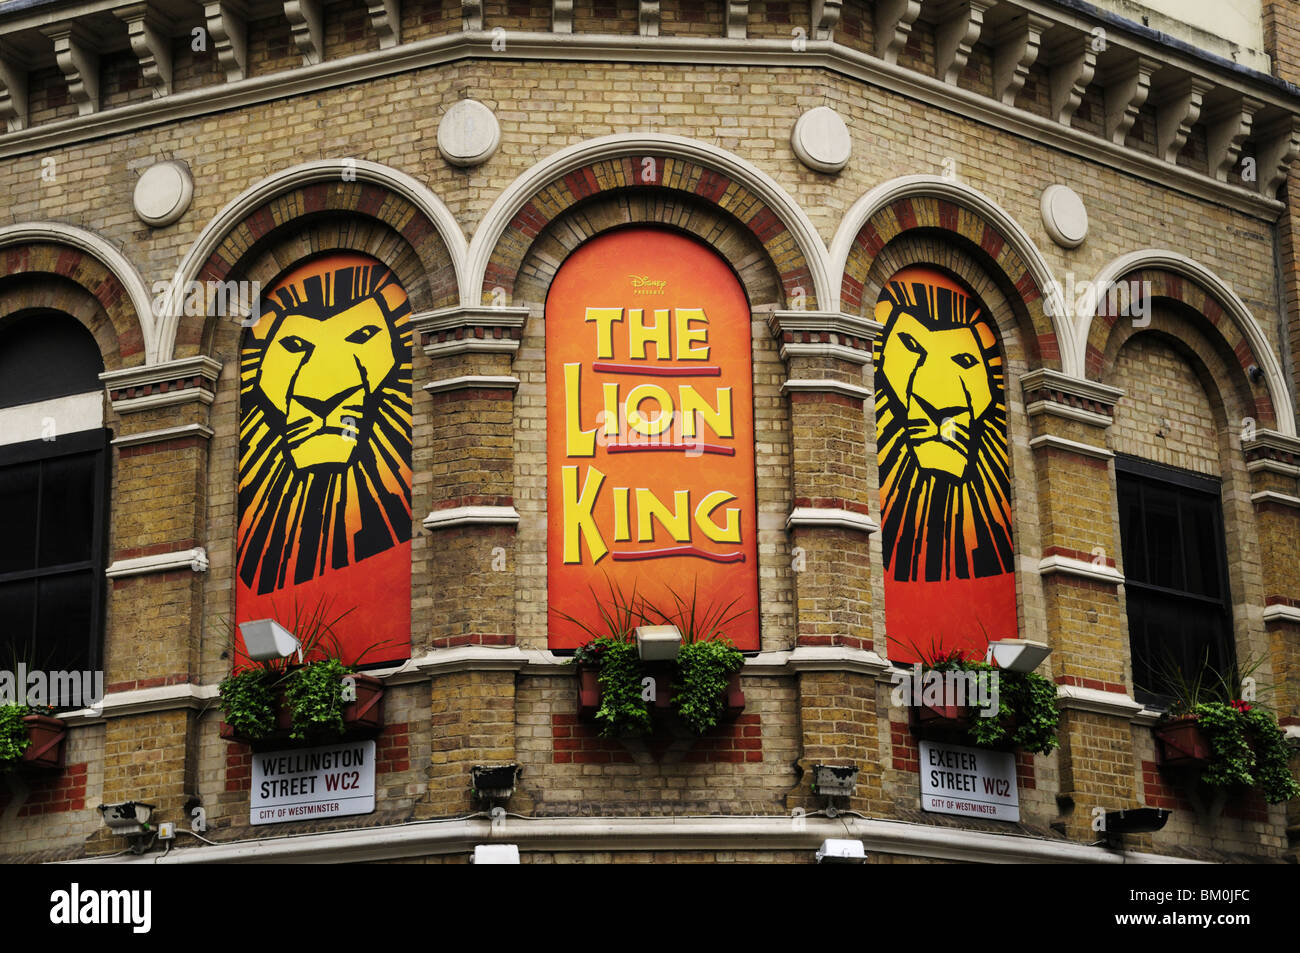 the lion king billboards at the lyceum theatre  covent